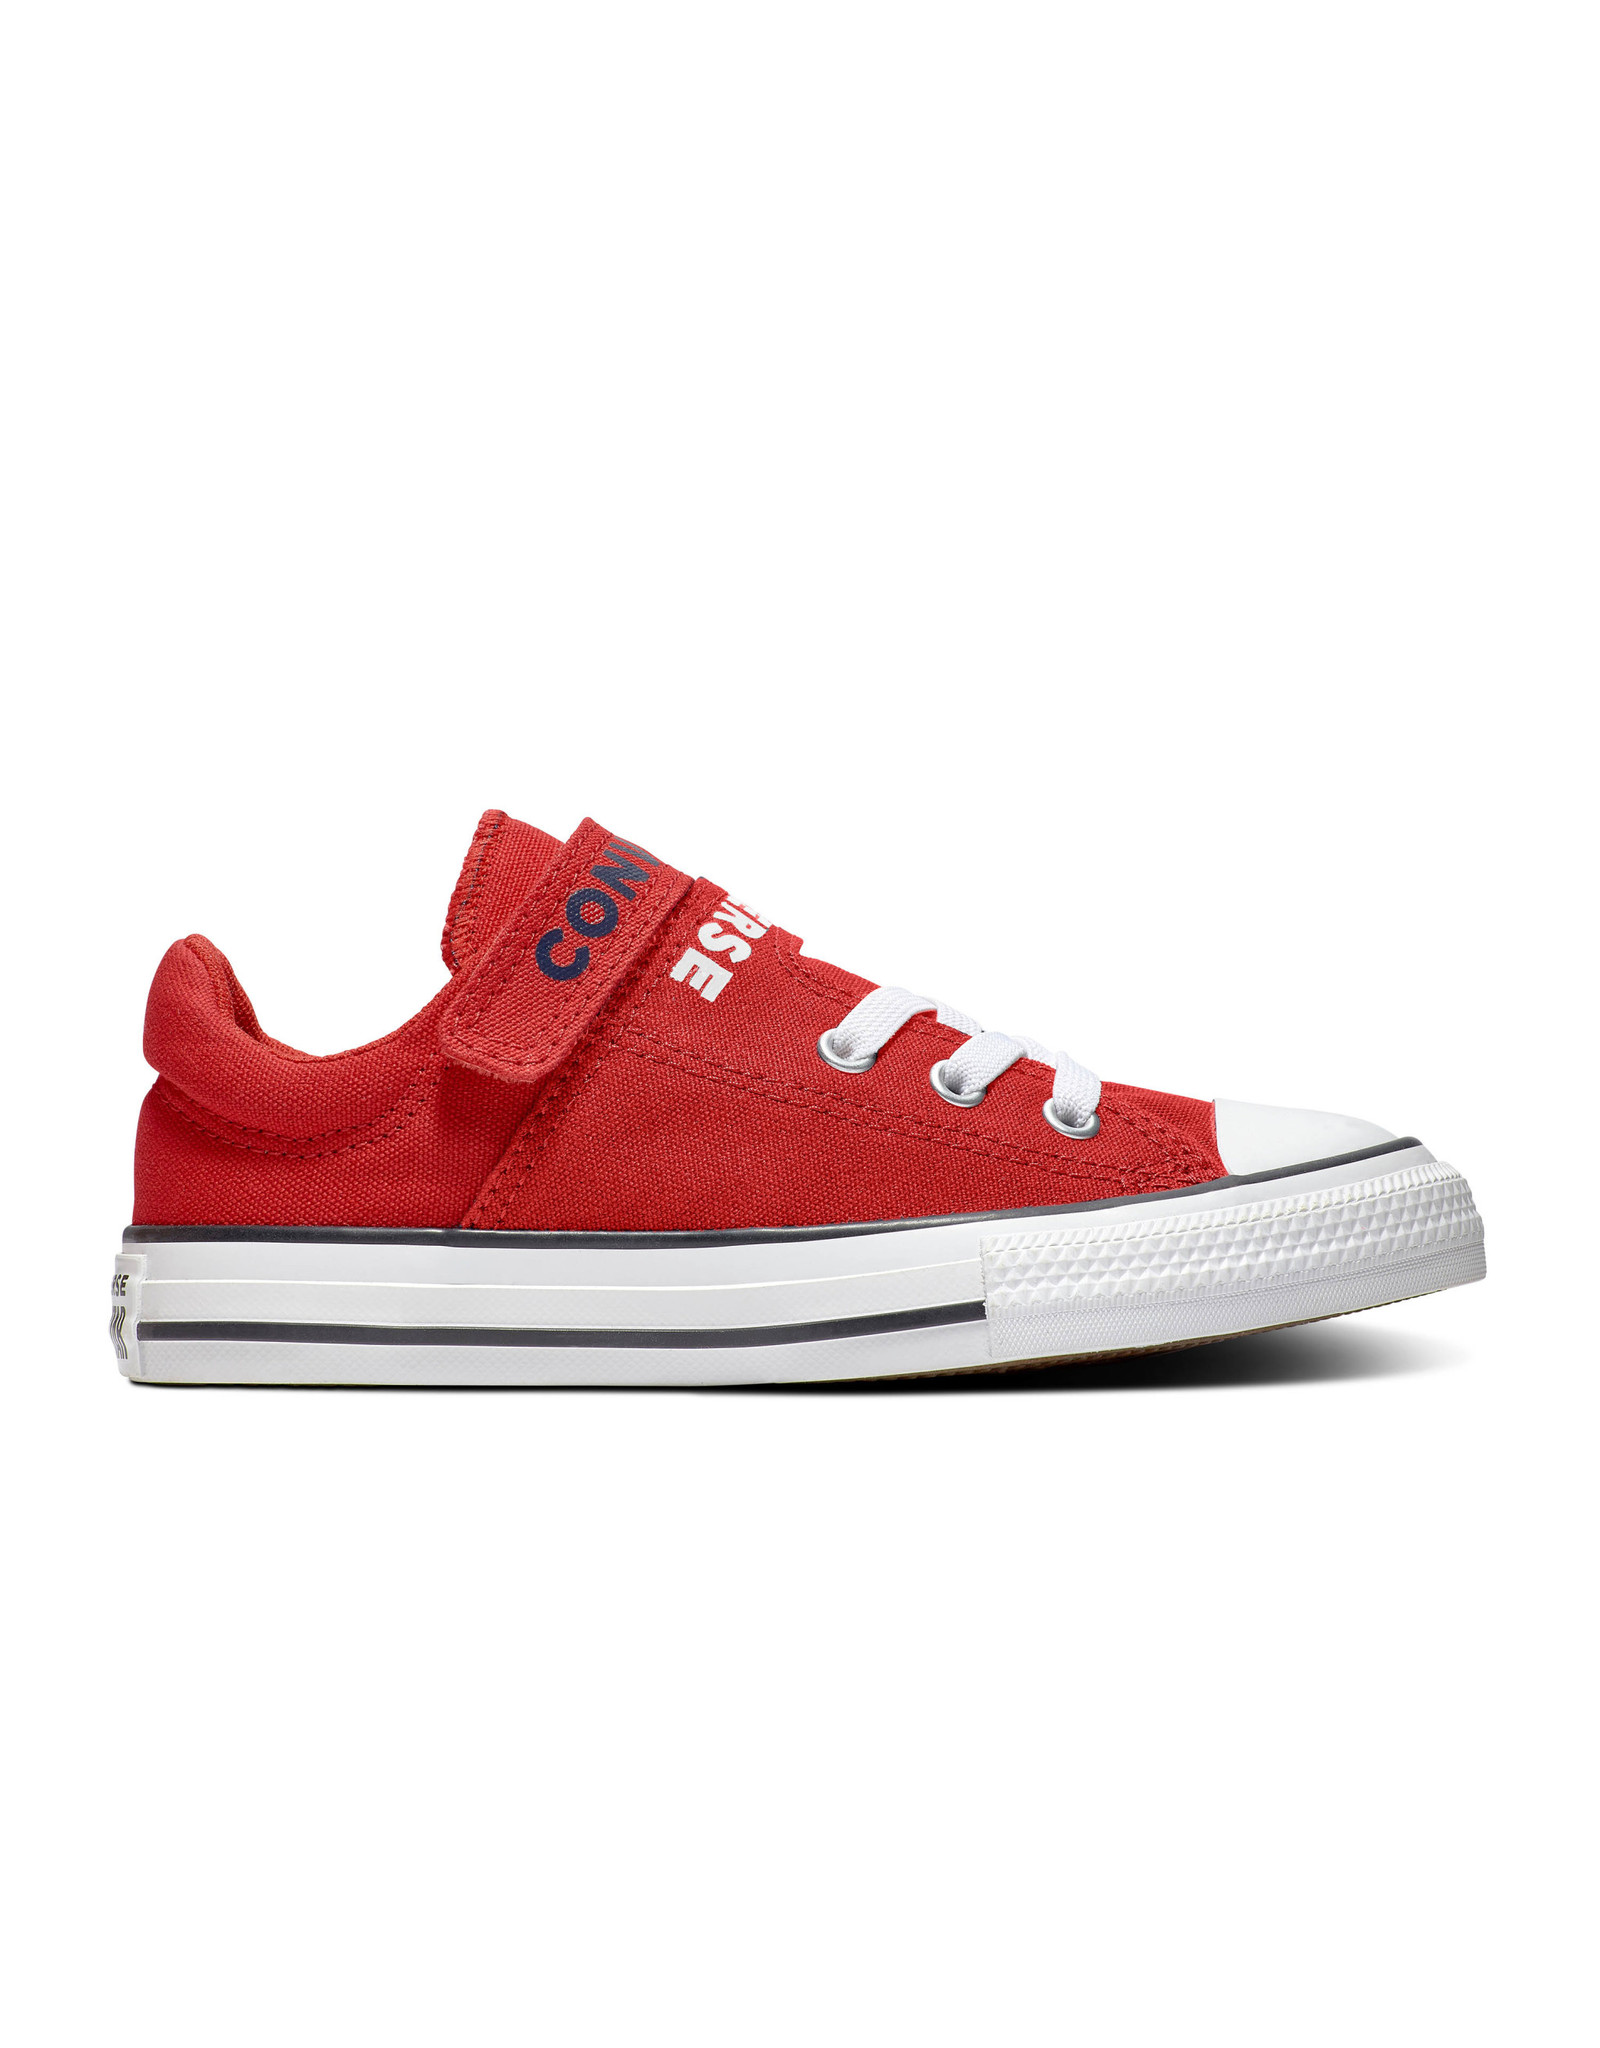 CONVERSE CHUCK TAYLOR ALL STAR  DOUBLE STRAP OX UNIVERSITY RED CAVUR-666930C